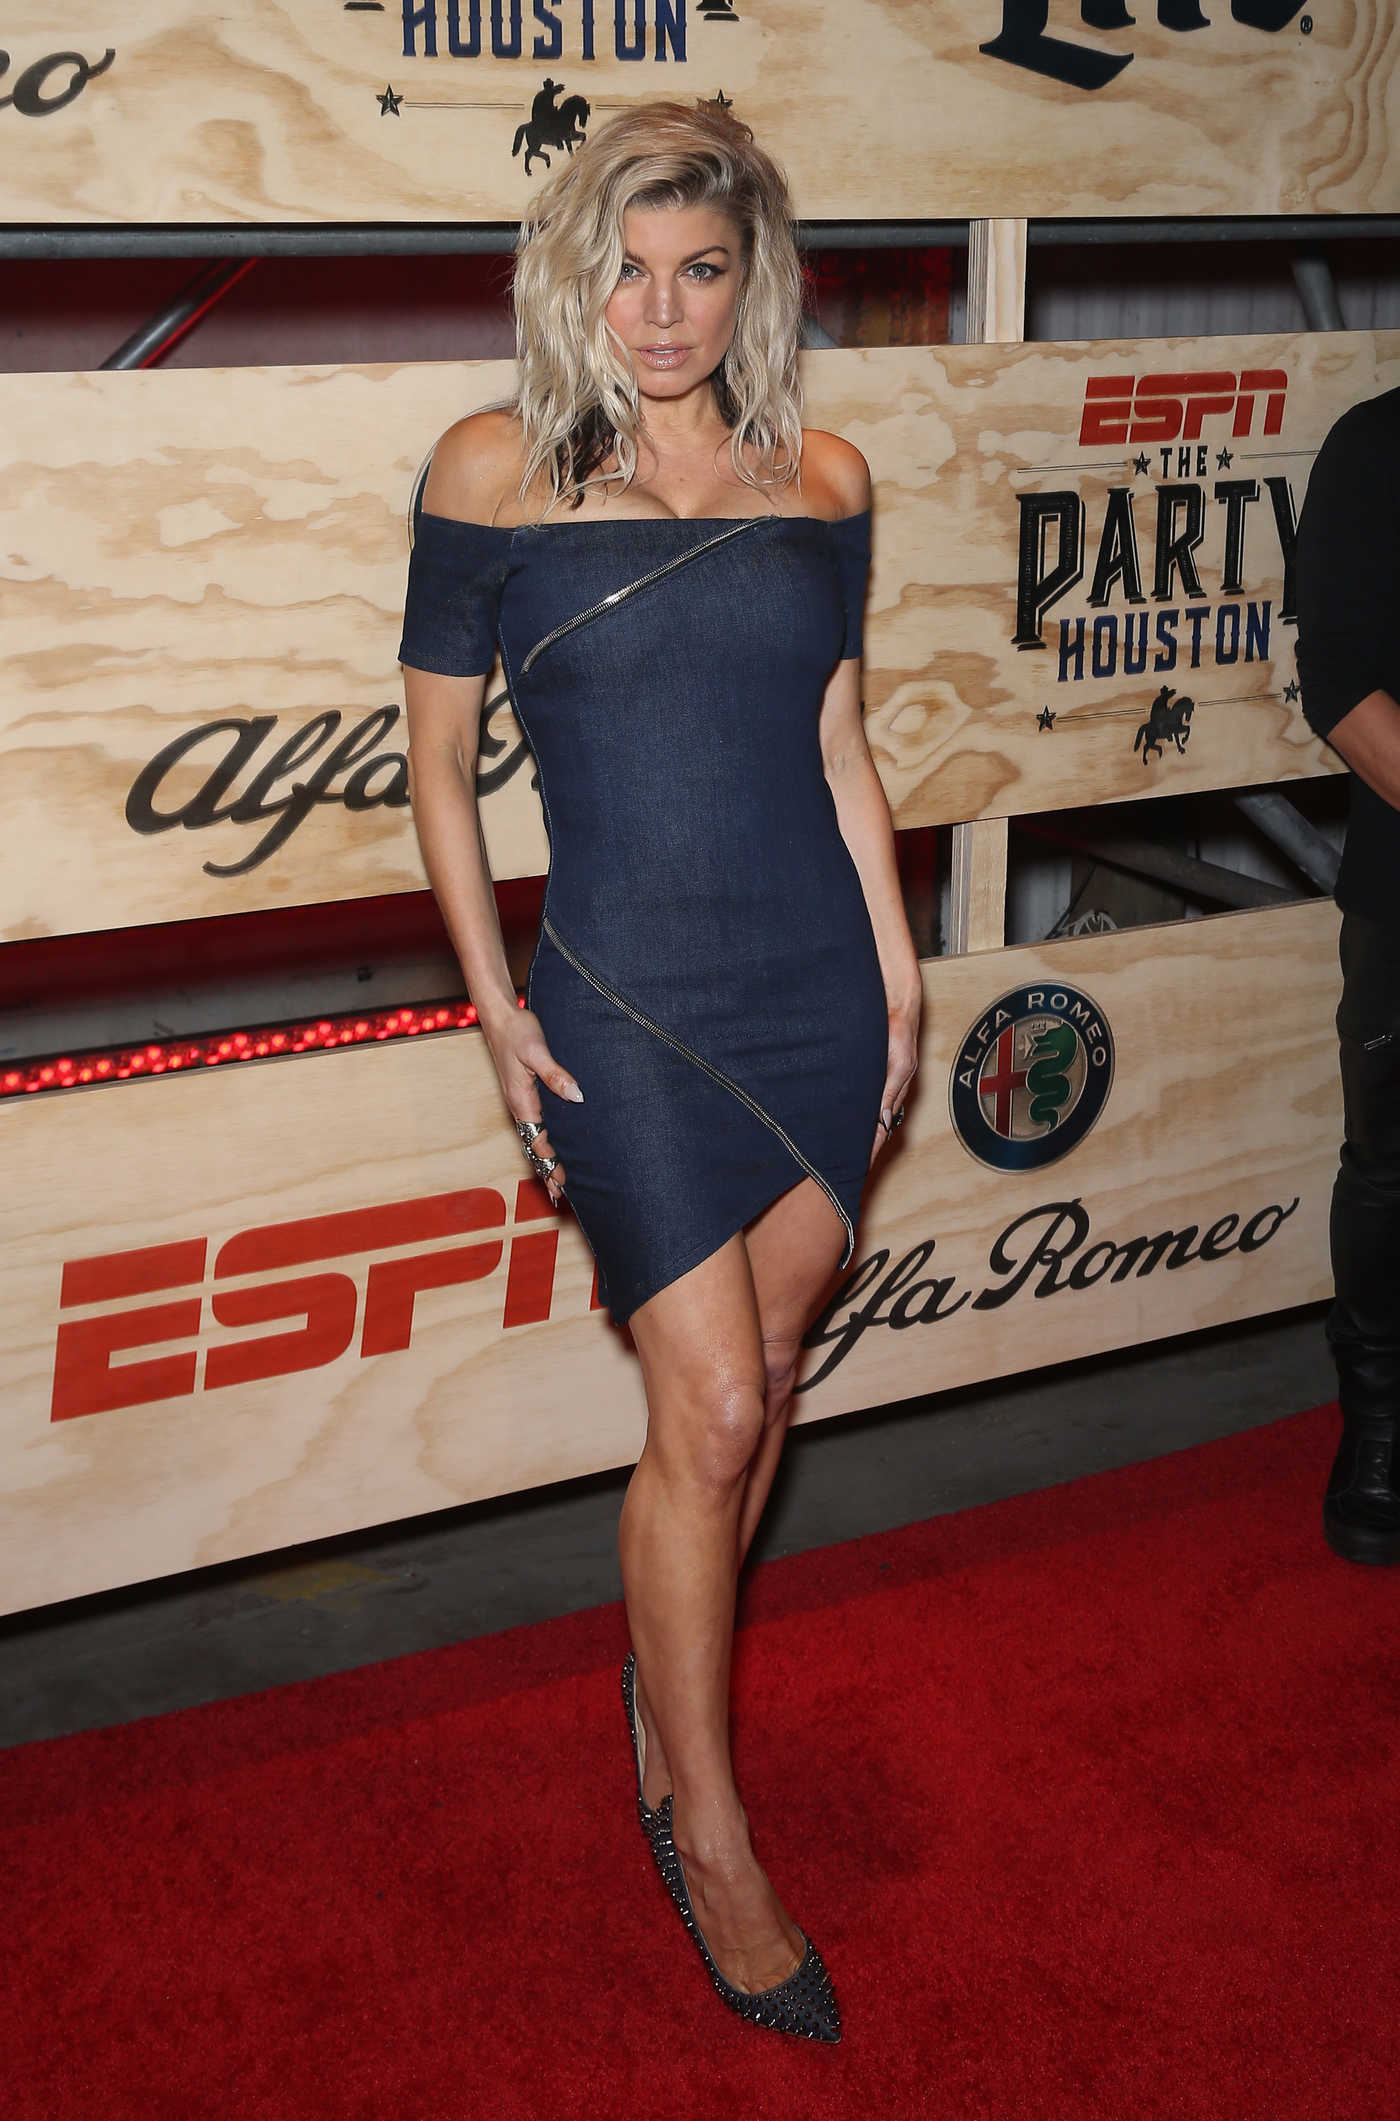 Fergie at the 13th Annual ESPN The Party in Houston 02/03/2017